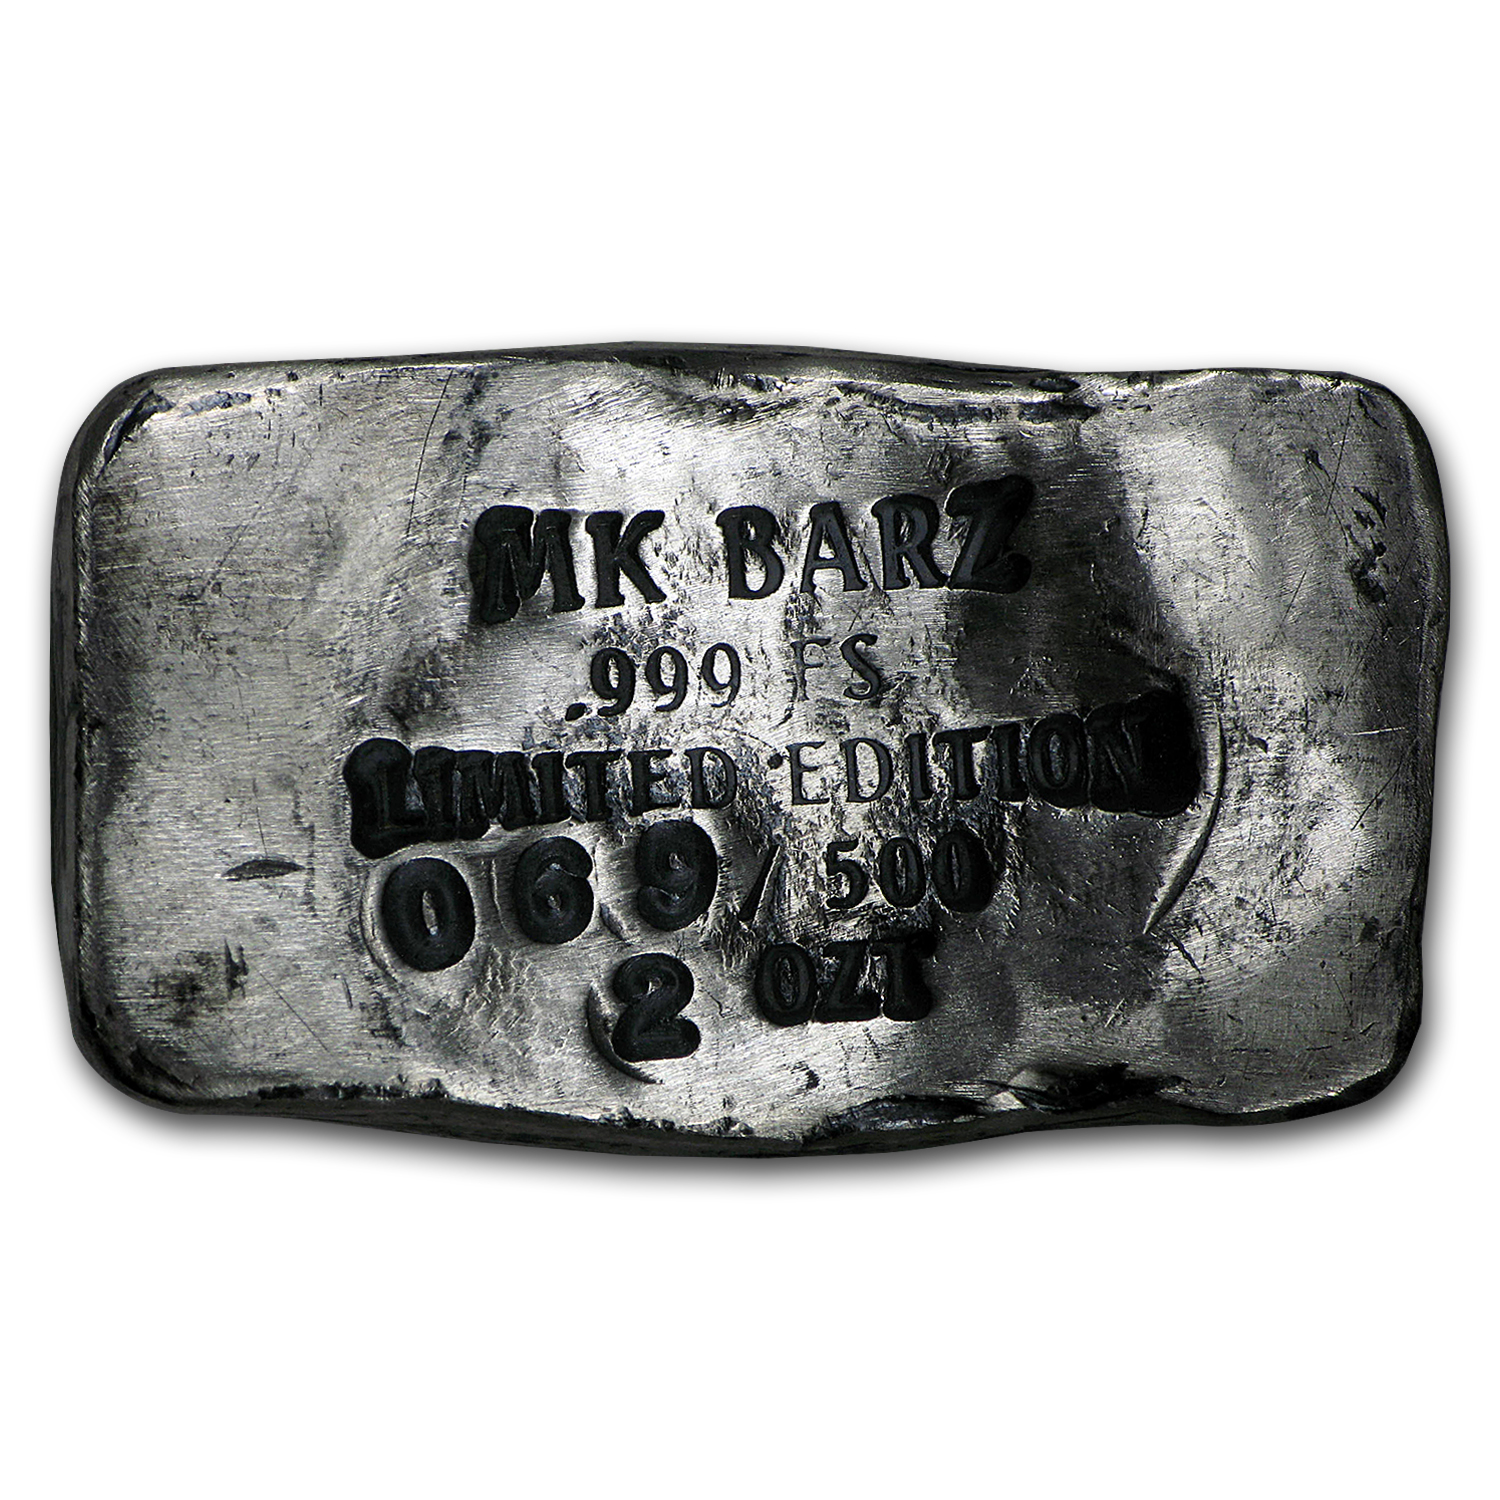 2 oz Silver Bar - Pirate Skull (Limited Edition, Jolly Roger)